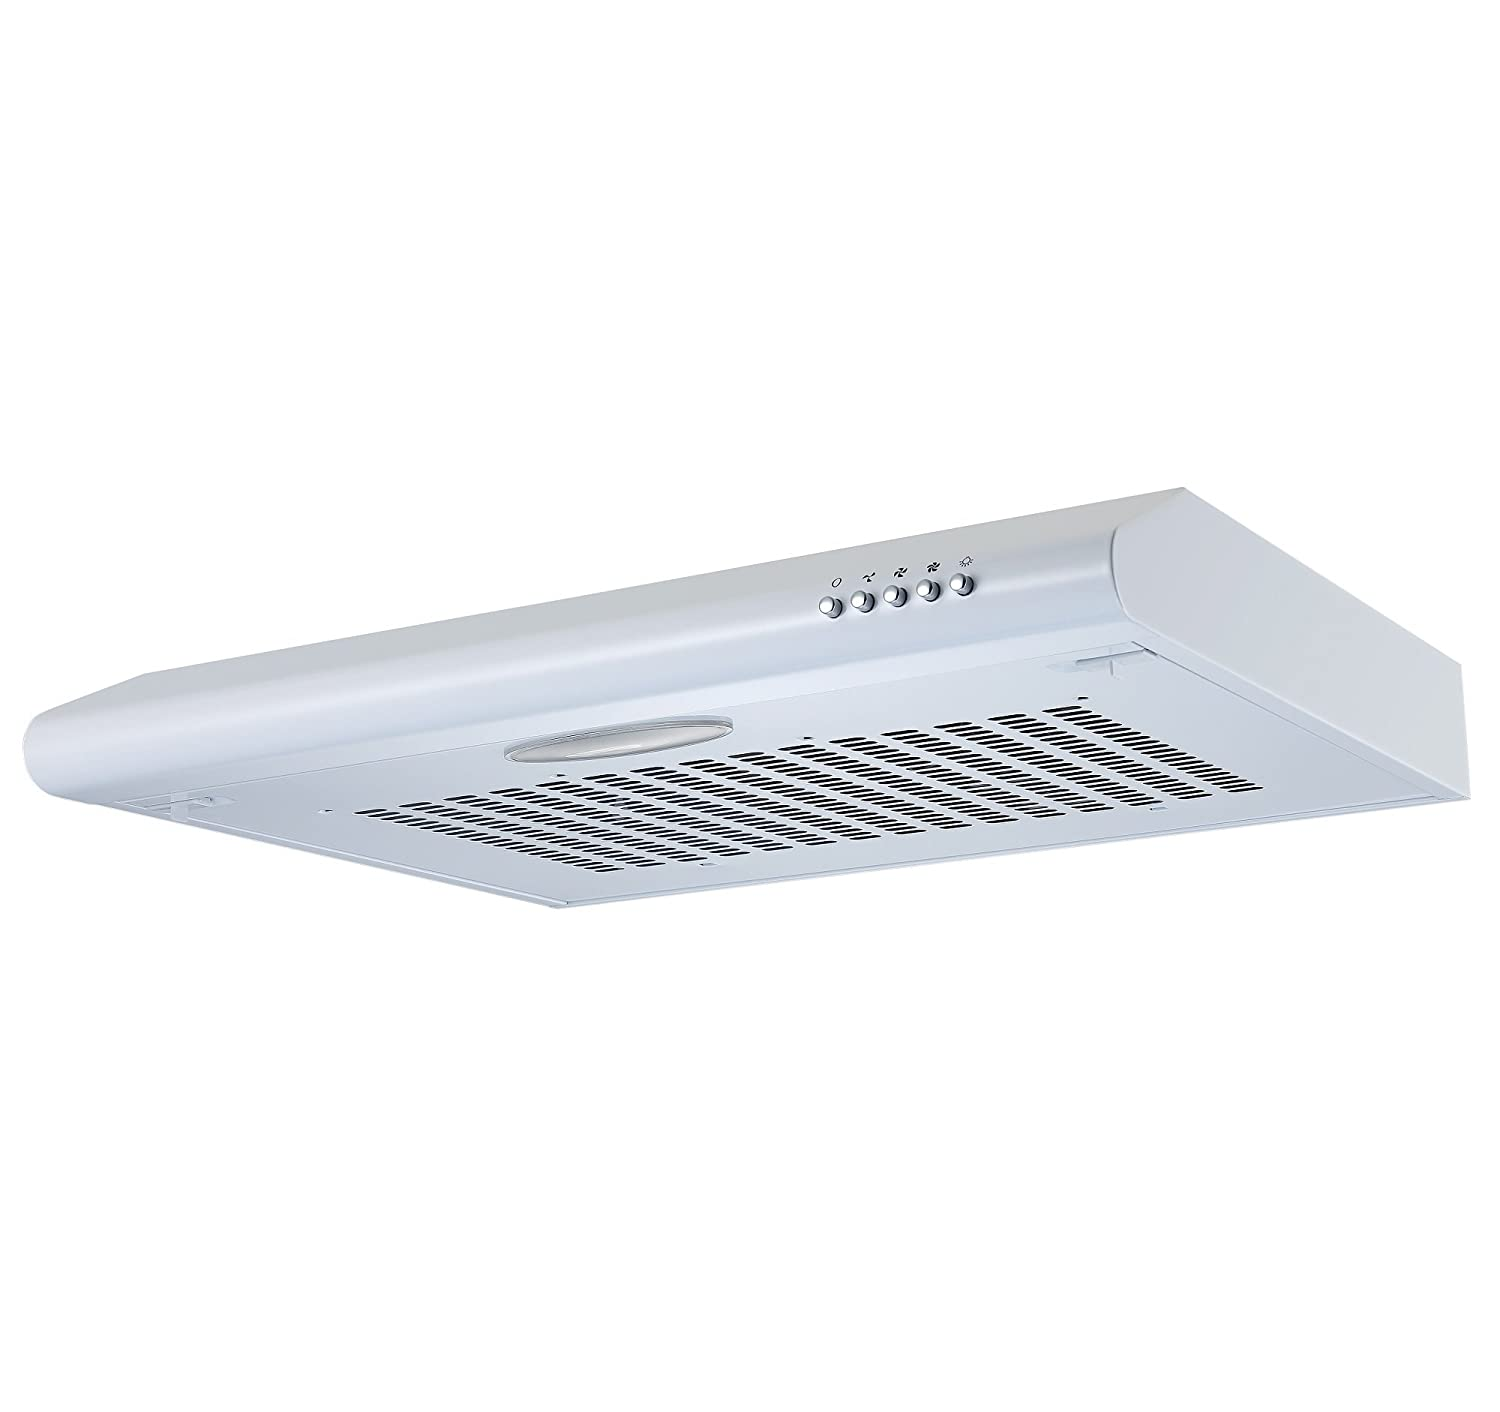 kitchen extractor fan. Cookology VISOR600WH 60cm Visor Cooker Hood In White | Kitchen Extractor Fan: Amazon.co.uk: Large Appliances Fan O